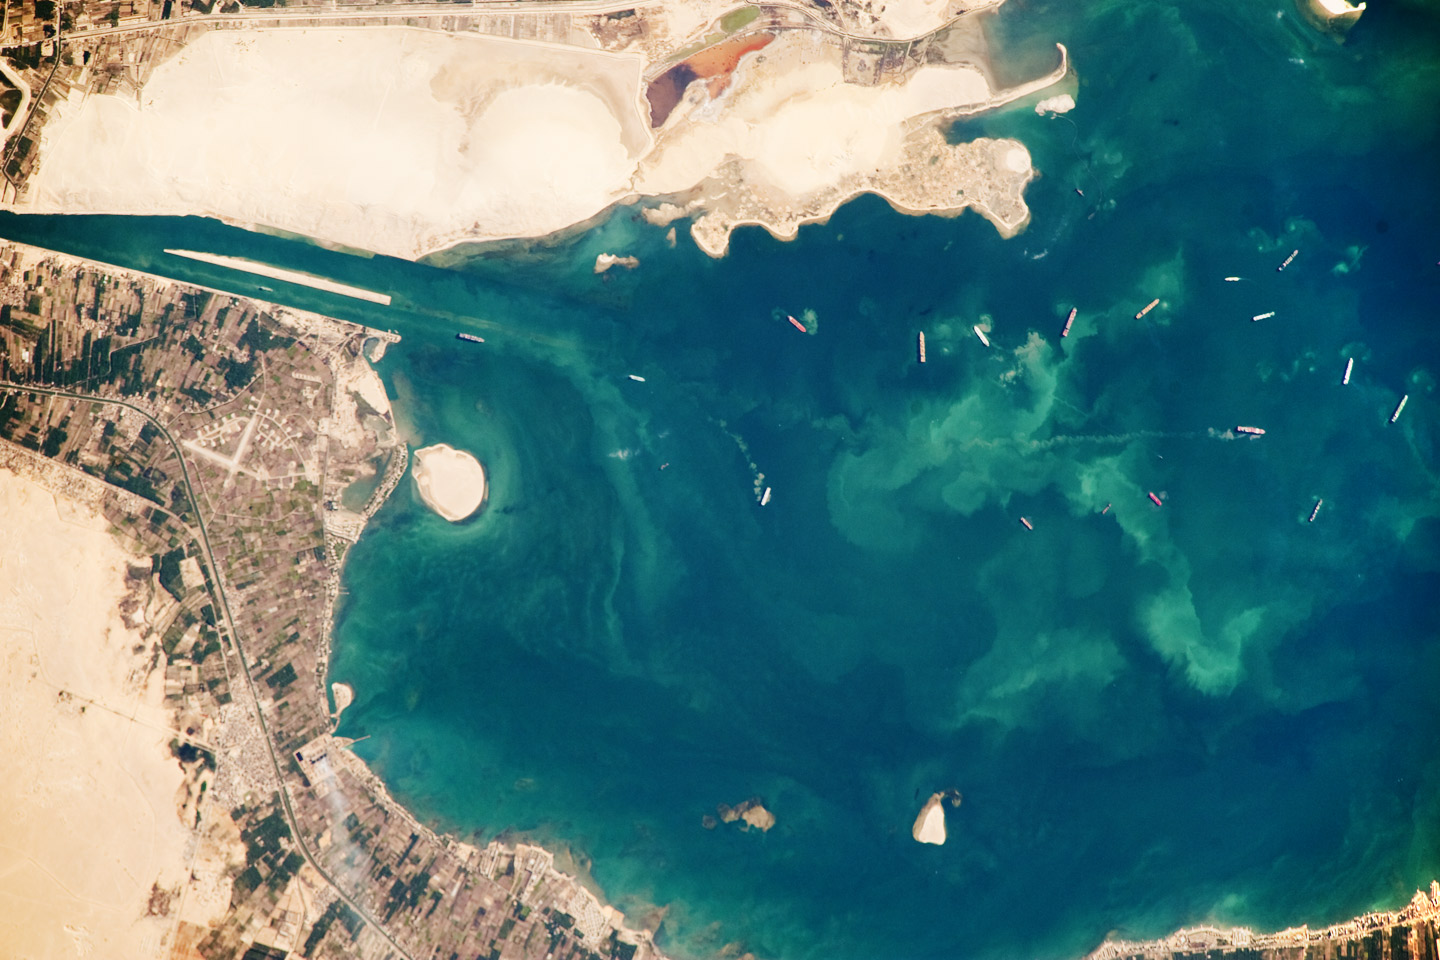 Today's Image of the Day comes thanks to the NASA Earth Observatory and features a look the Great Bitter Lake along the Suez Canal in Egypt.